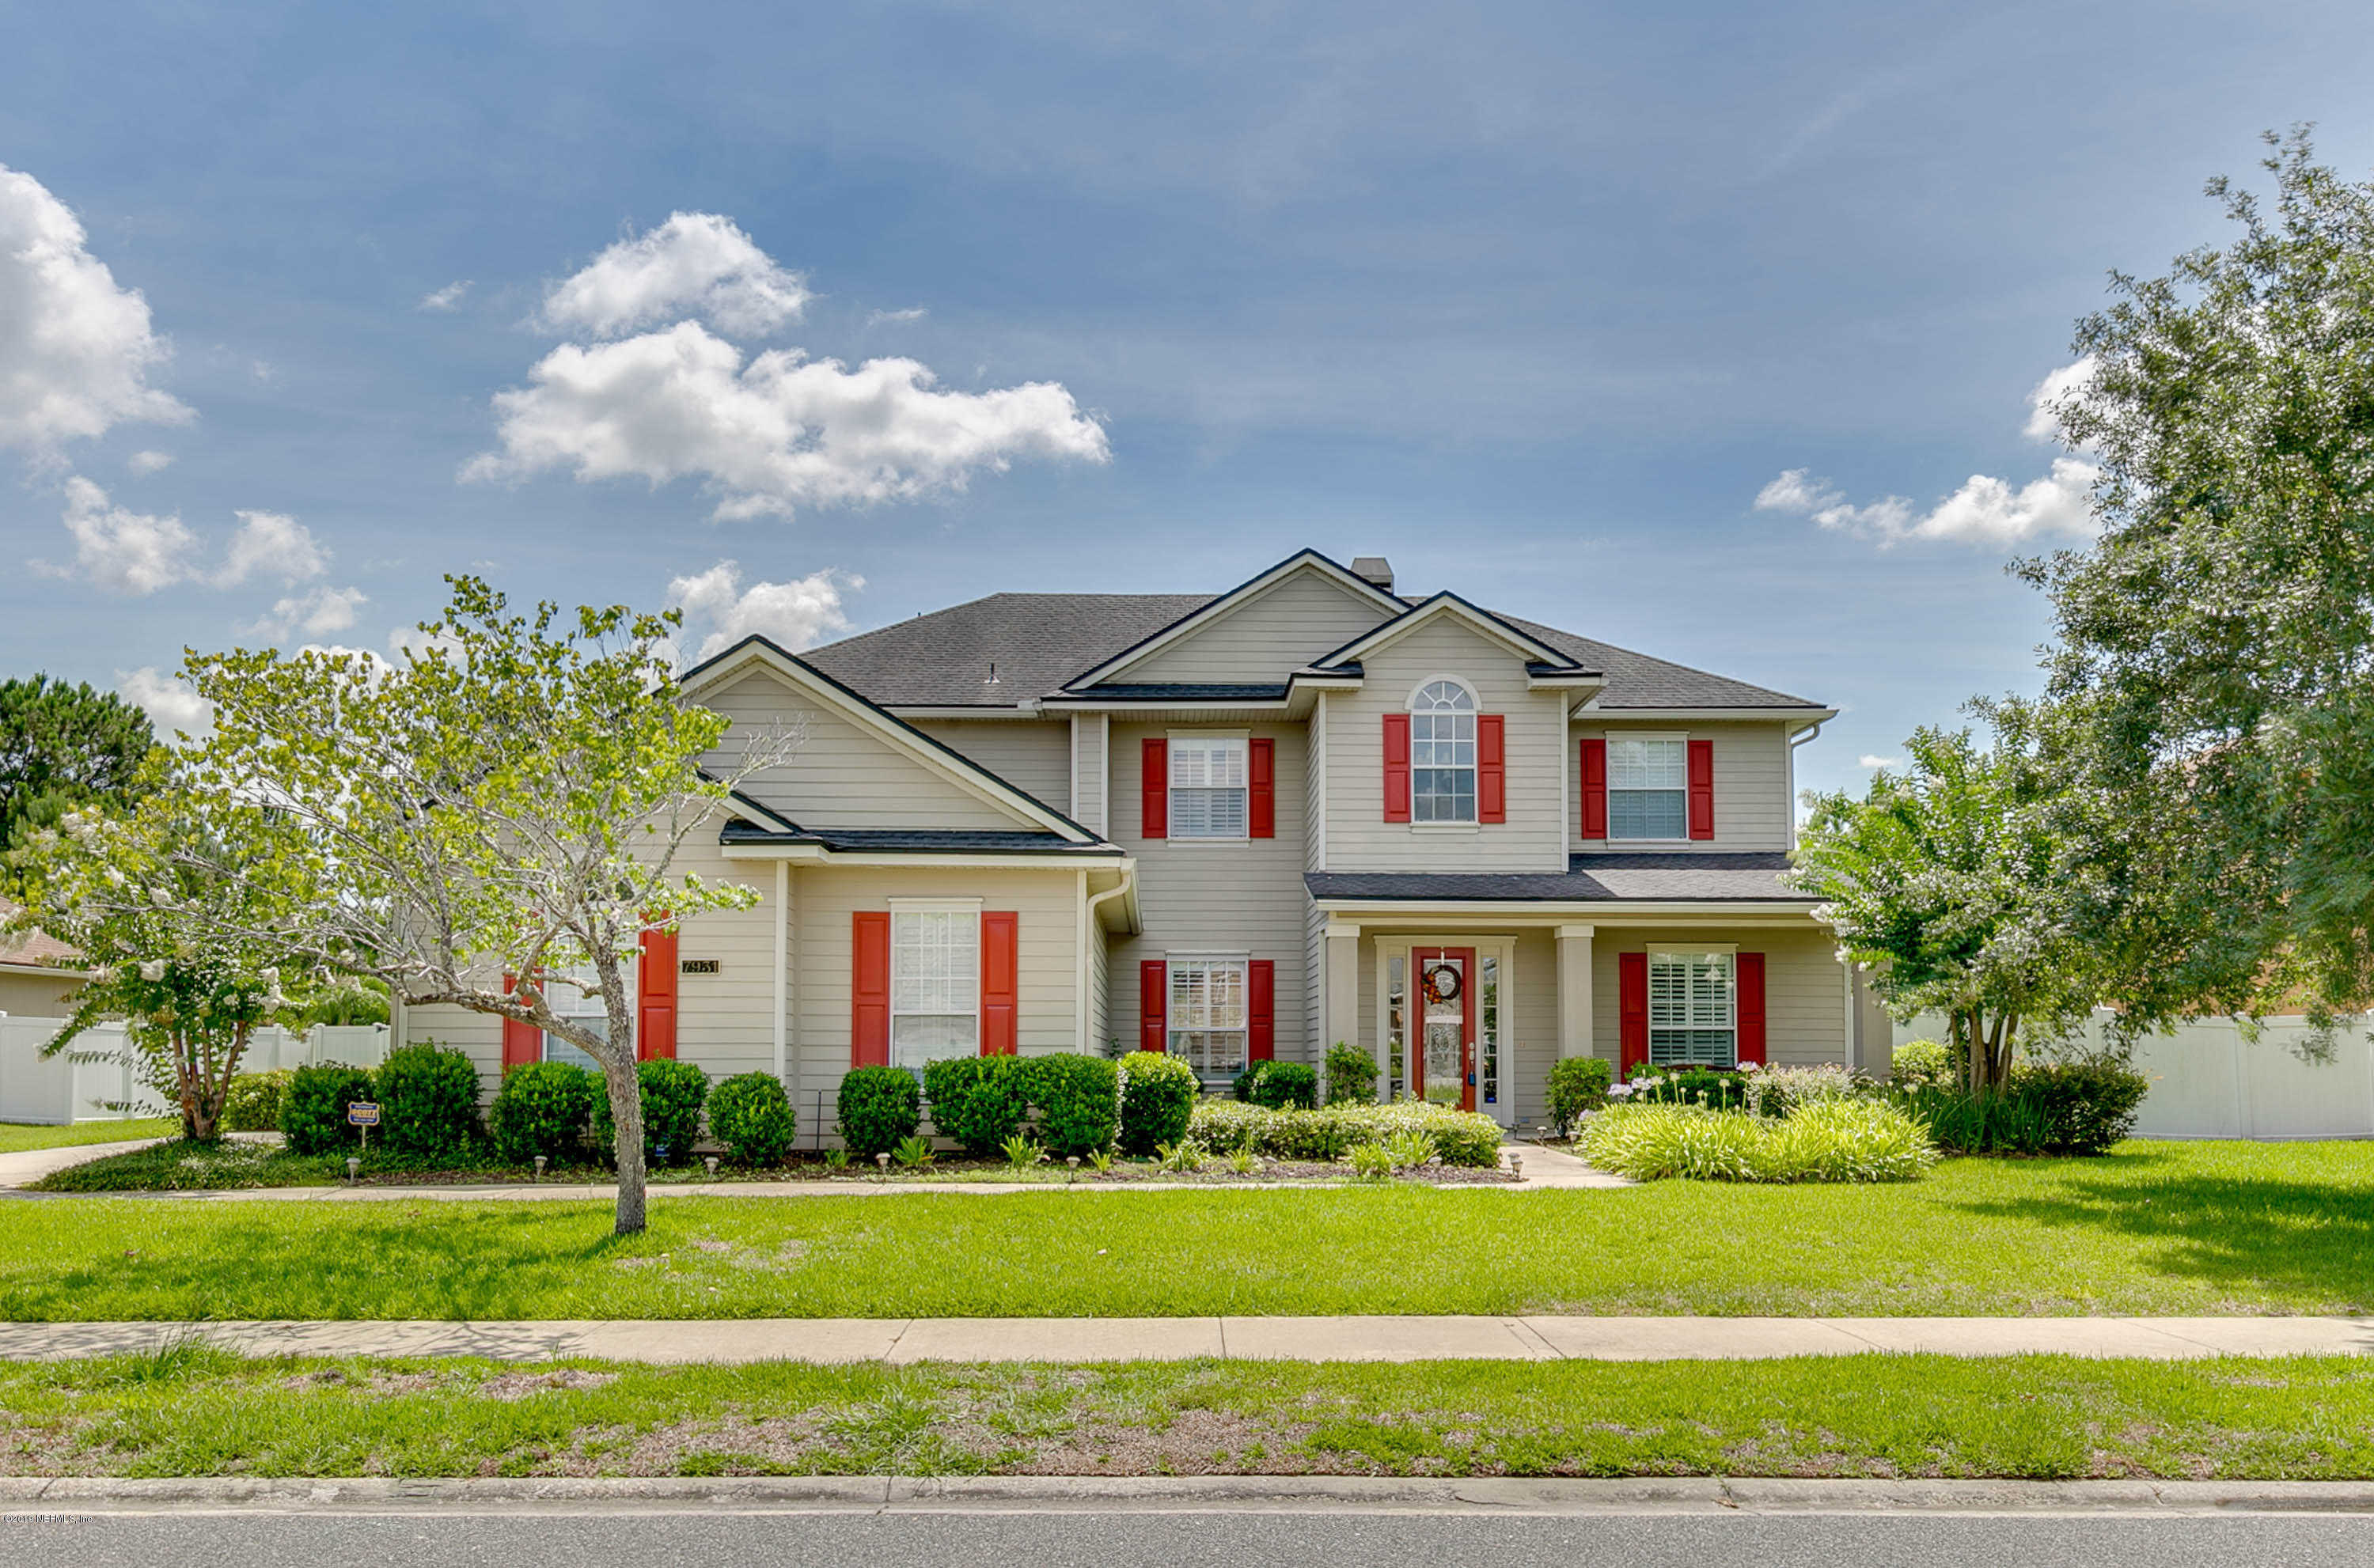 7931 Dawsons Creek Dr, Jacksonville, FL 32222 now has a new price of $384,900!